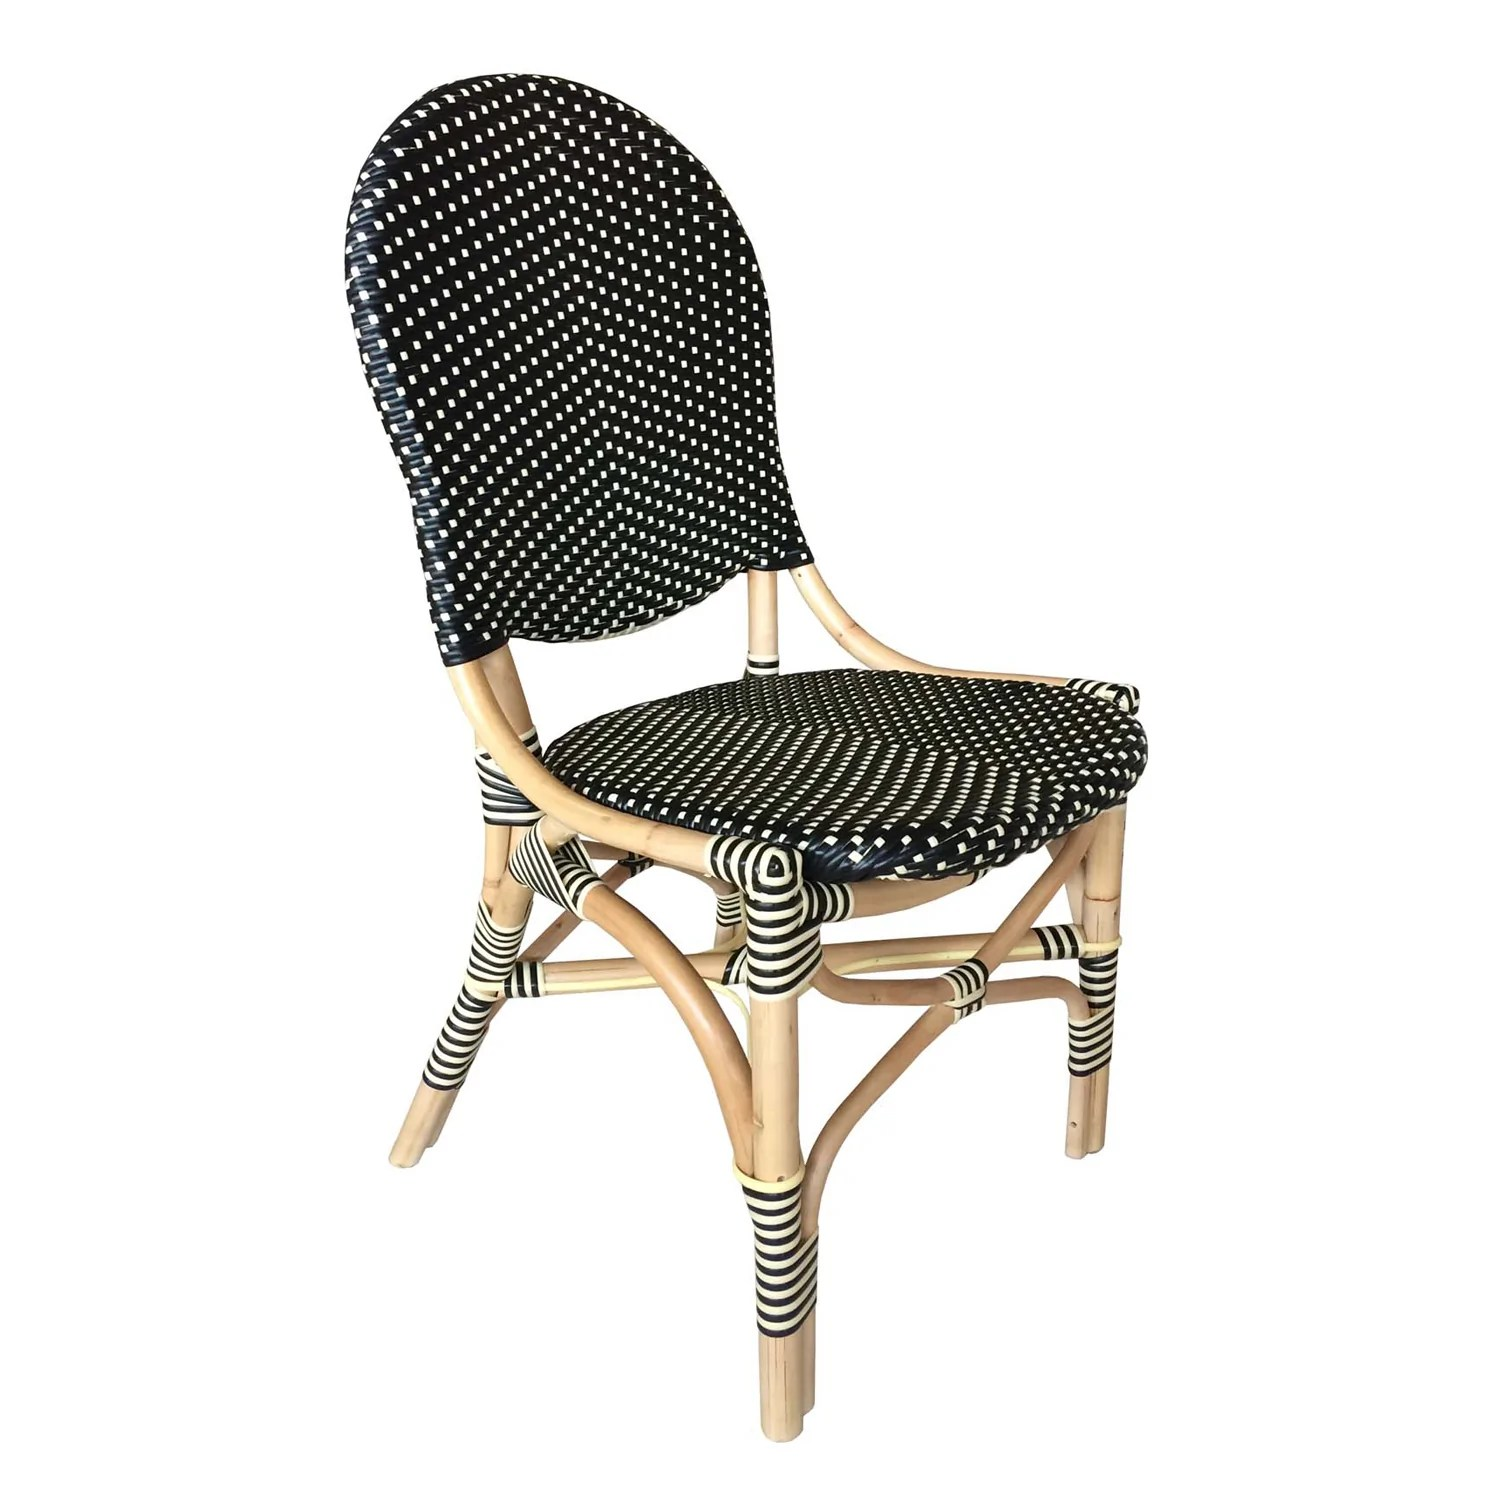 Outdoor French Bistro Chairs French Bistro Chair Black Beige Set Of 2 Padma S Plantation